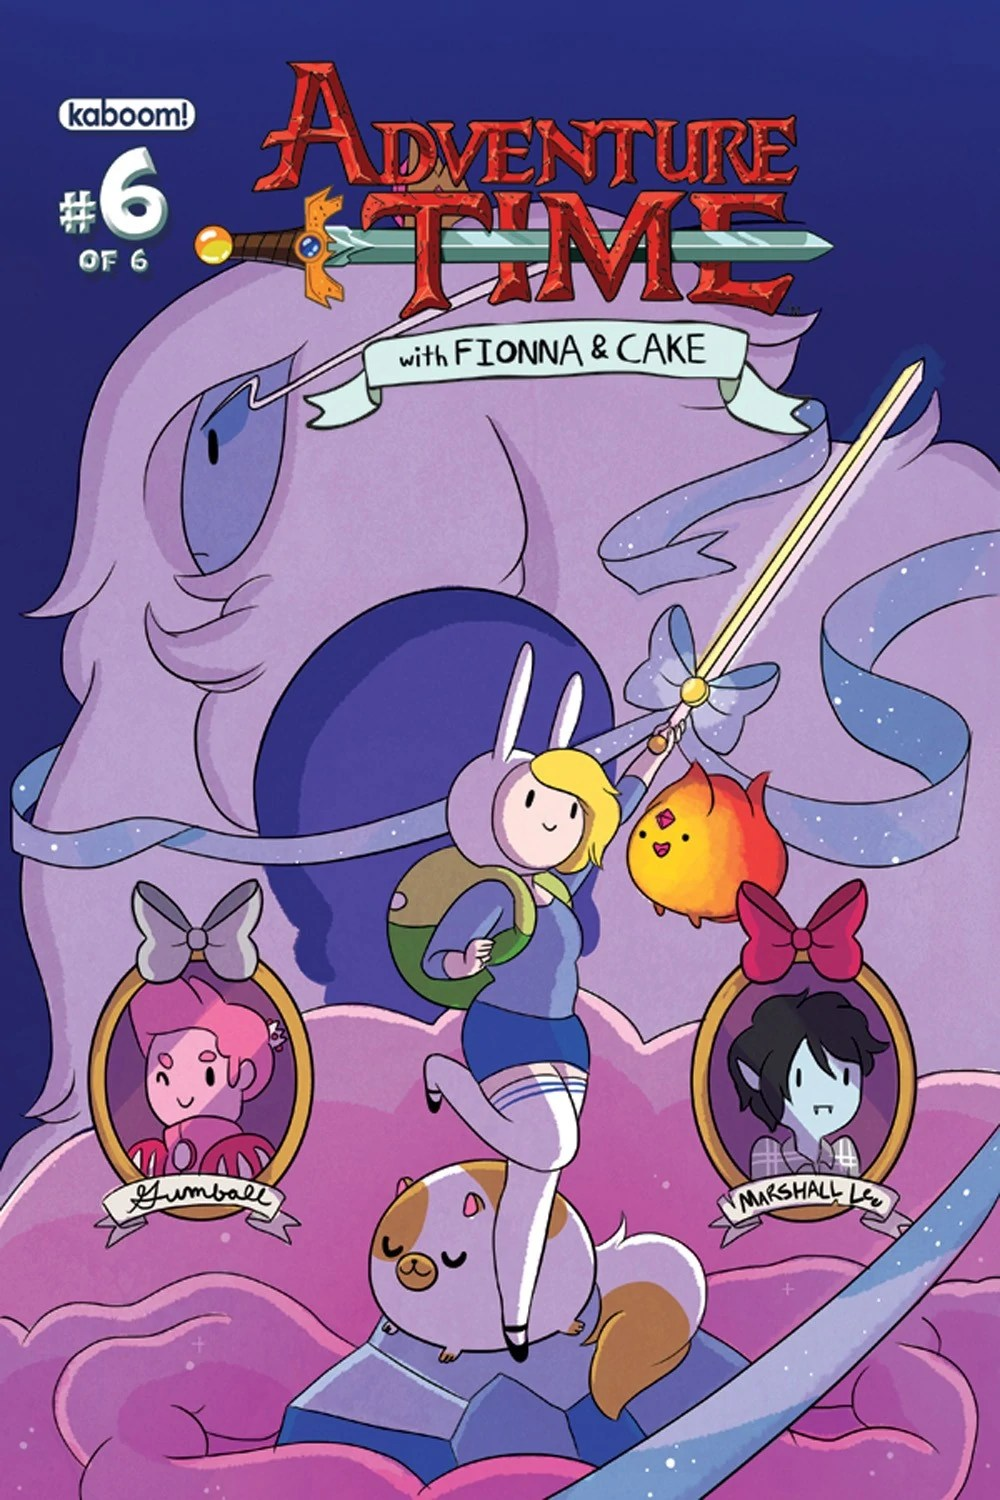 Adventure Time With Fionna And Cake Issue 6 Adventure